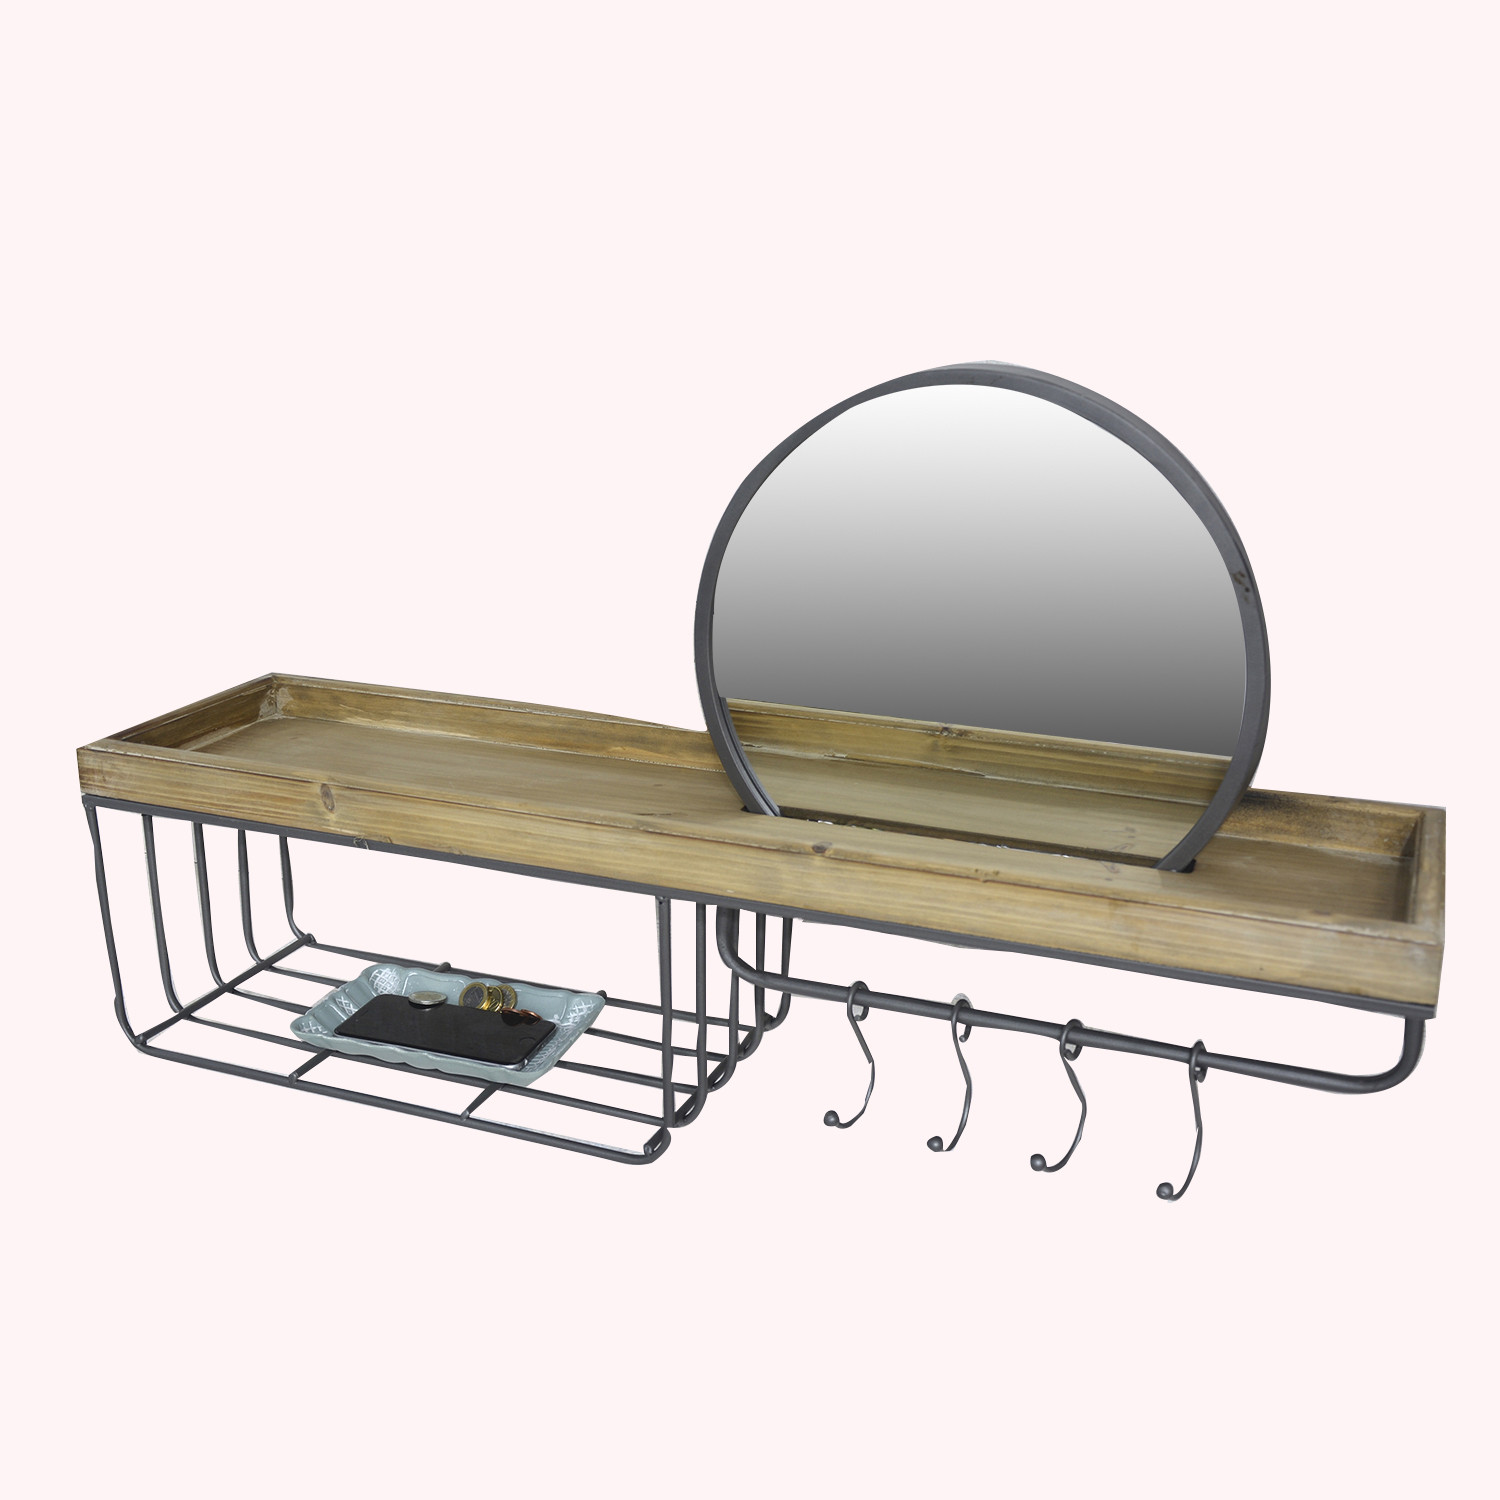 Coat rack mirror-natural wood-and-steel - Factory - Home, and more.